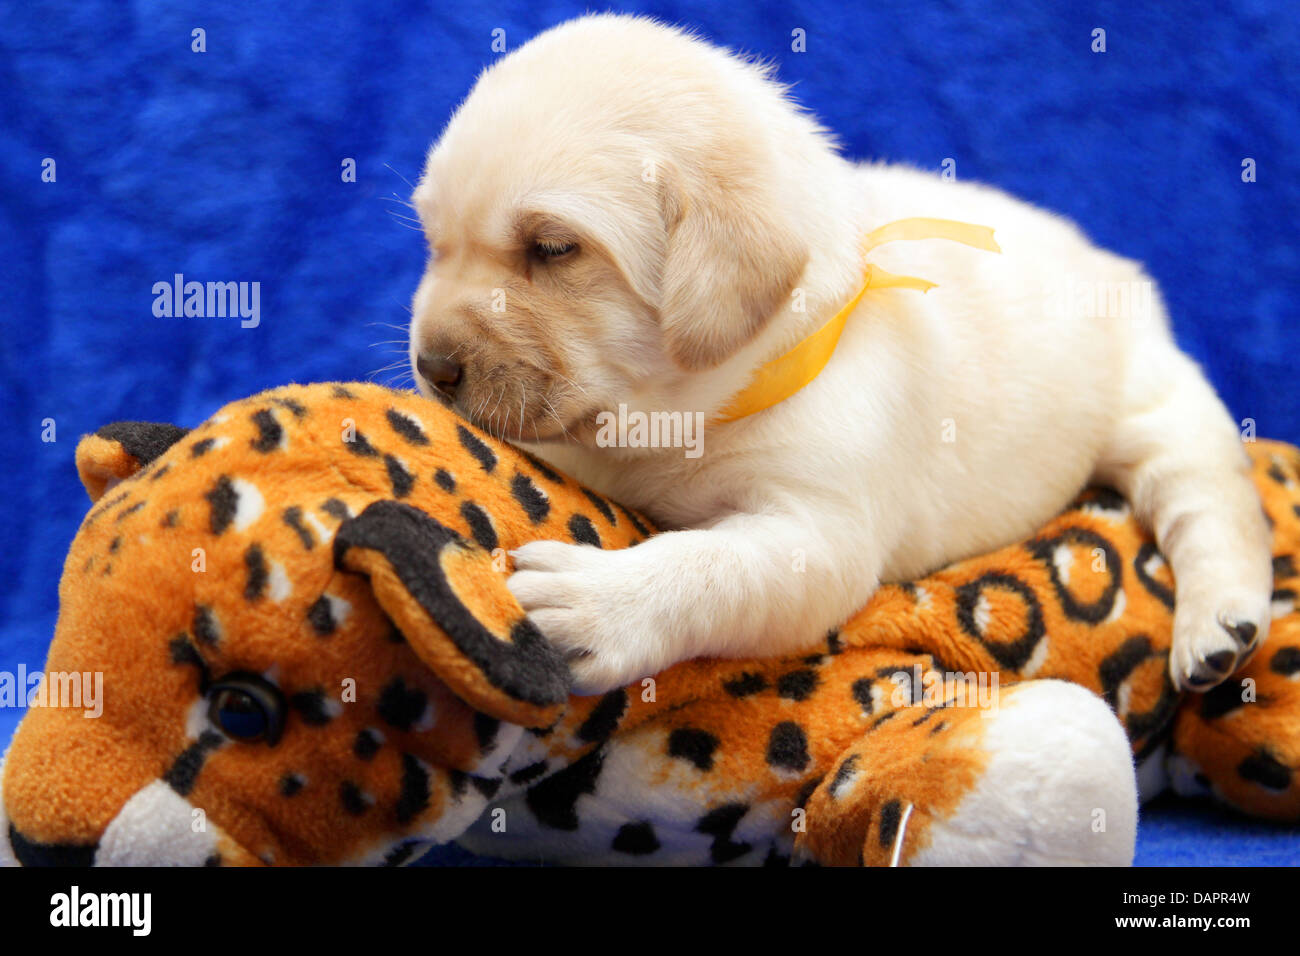 Yellow Labrador Puppy On The Toy Tiger On Blue Background Stock Photo Alamy